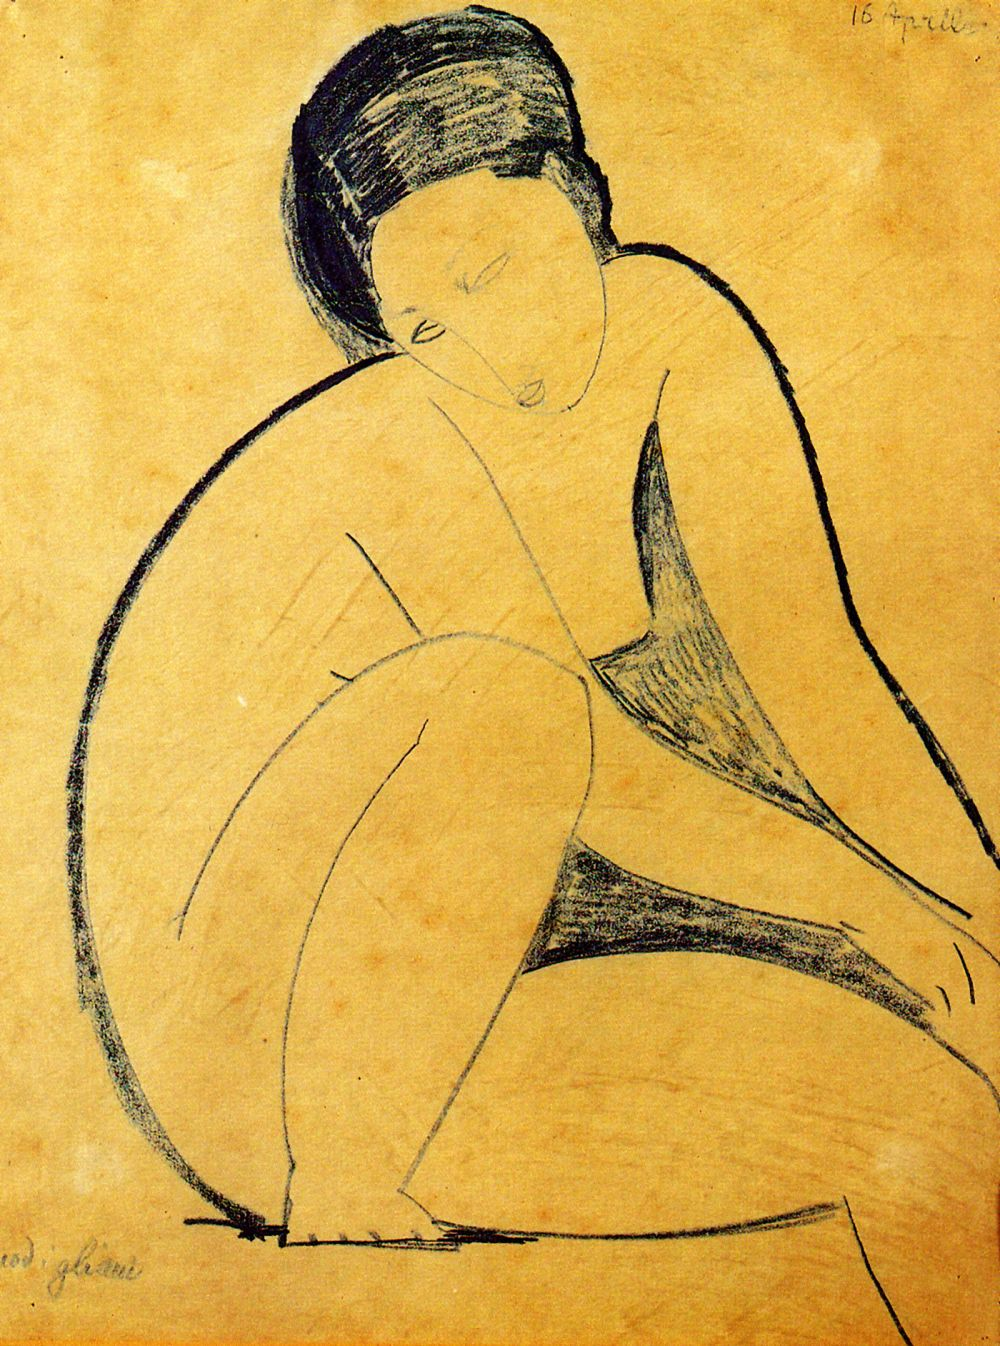 Mujeres. Mitologías Amedeo Modigliani, Seated nude (pen and blue ink), 20th C.